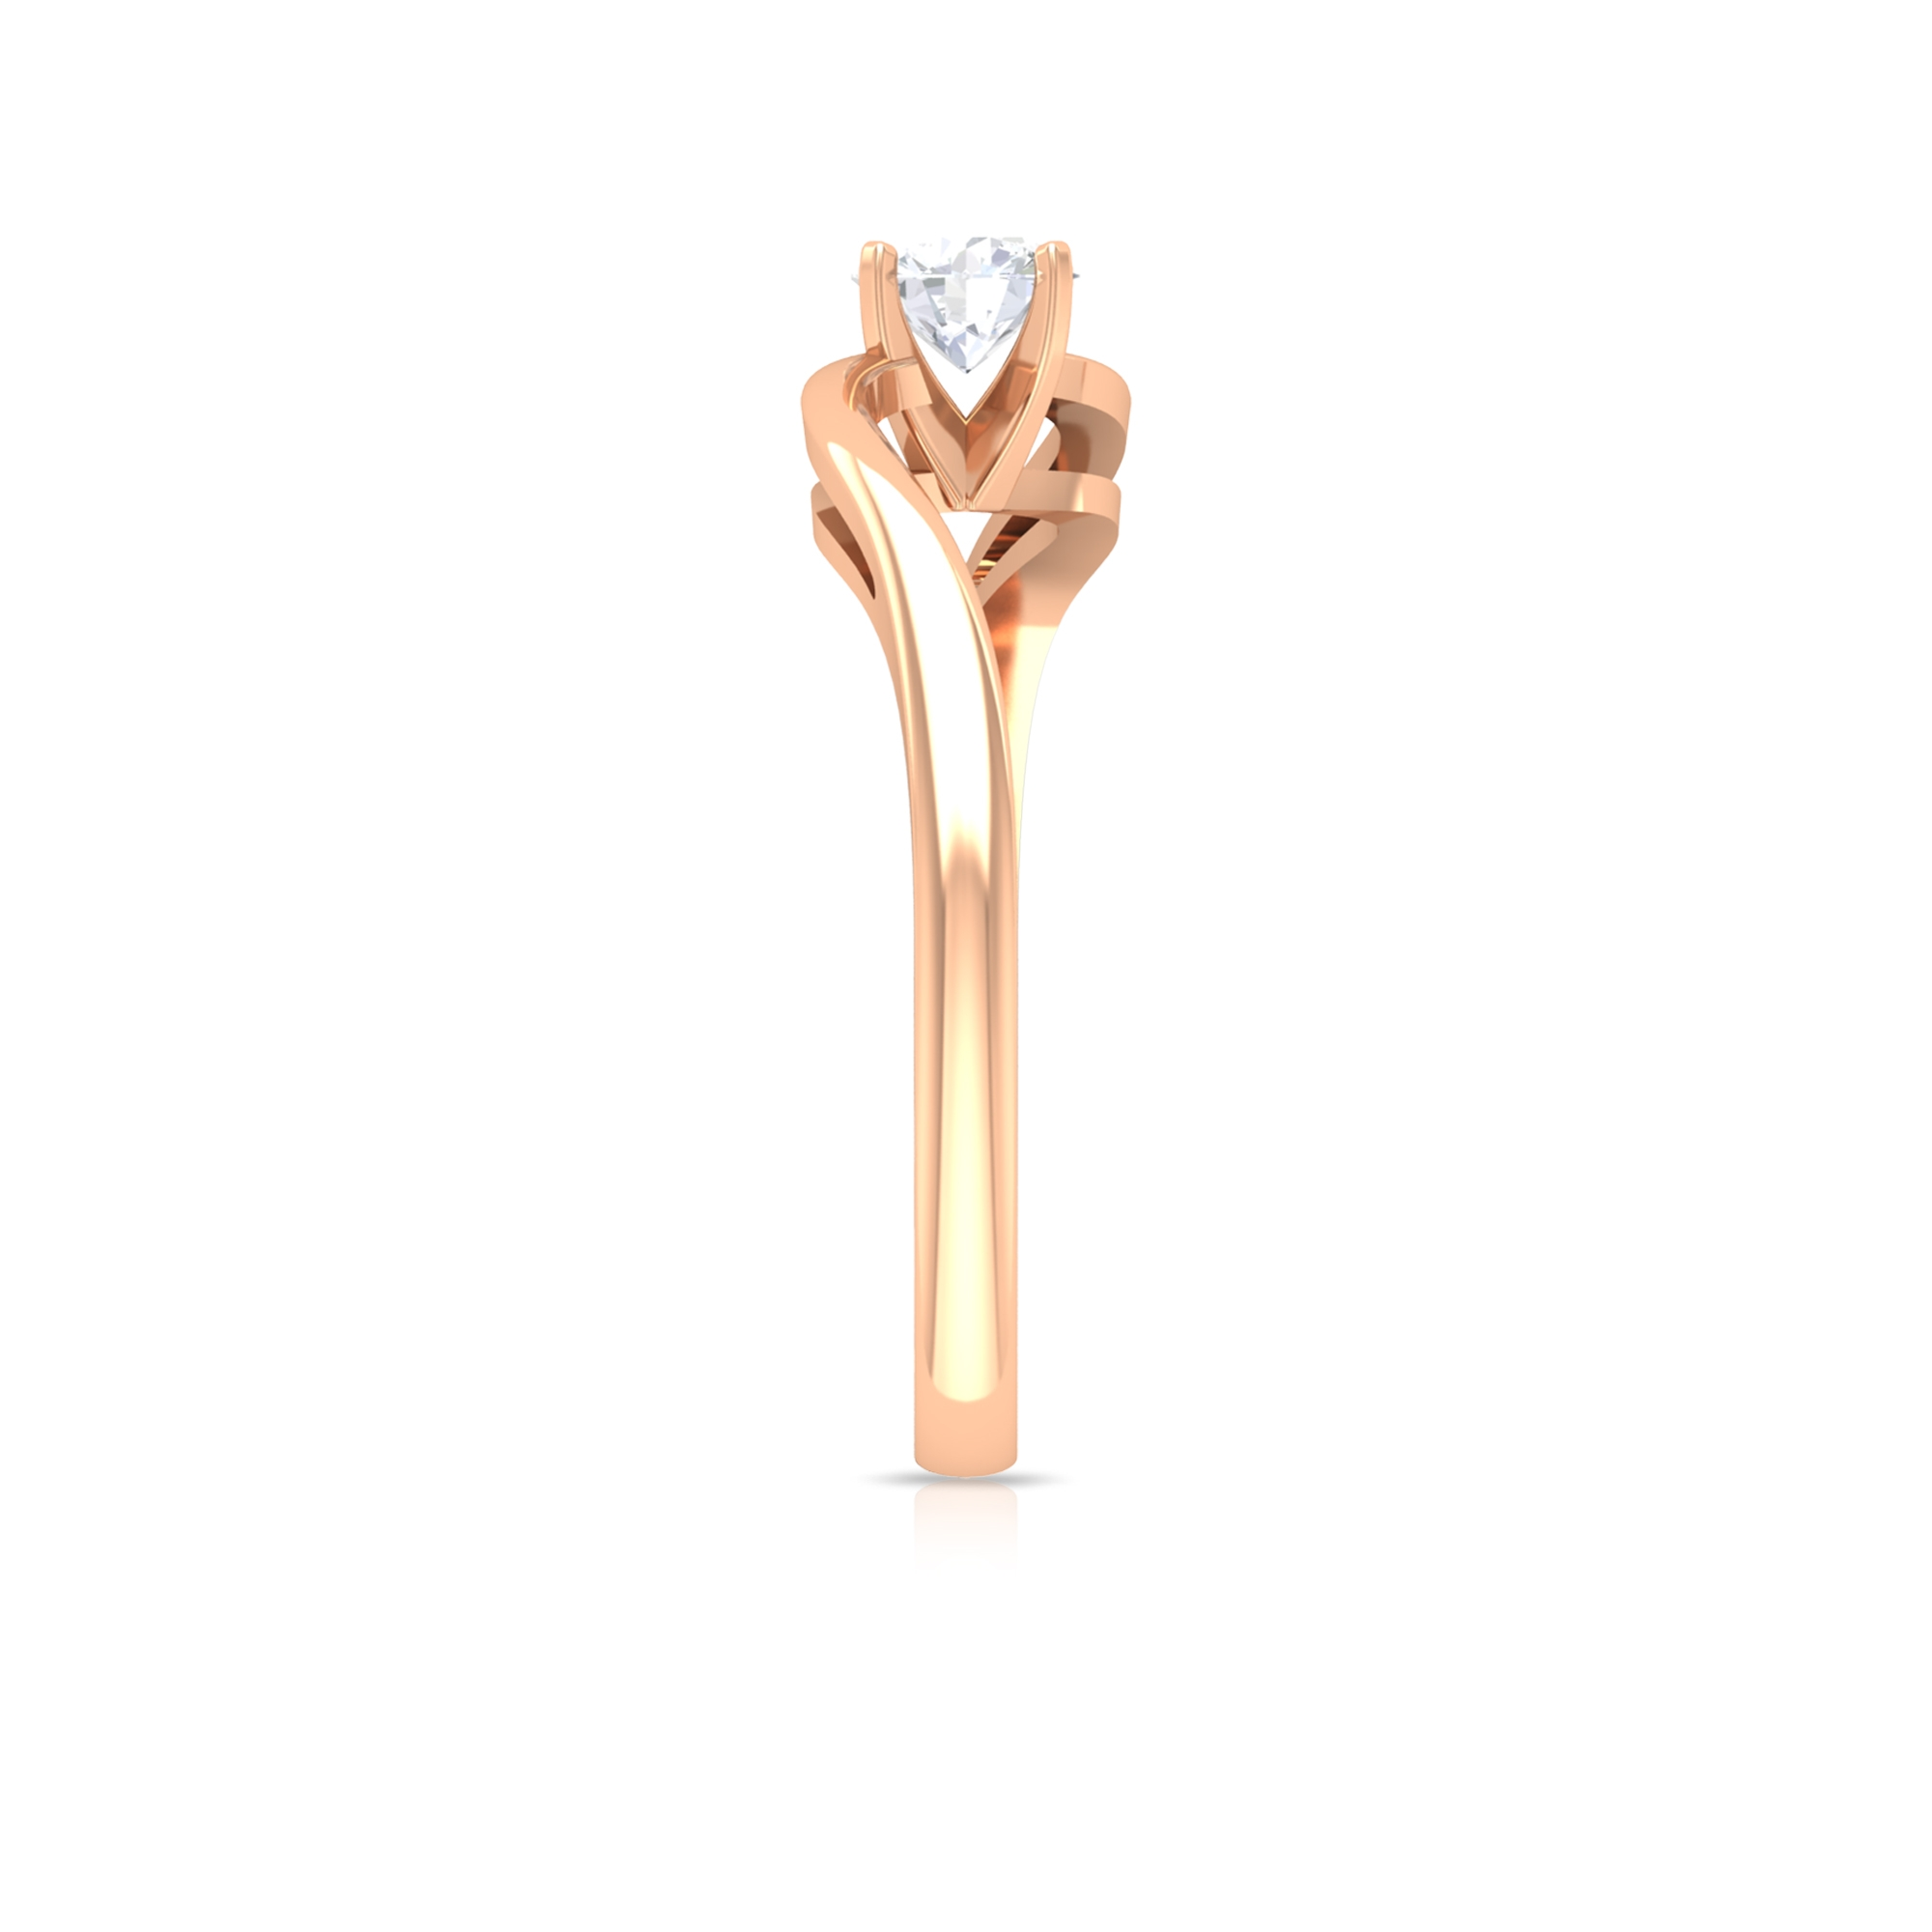 4.50X4.50 MM Round Diamond Solitaire Ring in 4 Prong Setting with Bypass Shank